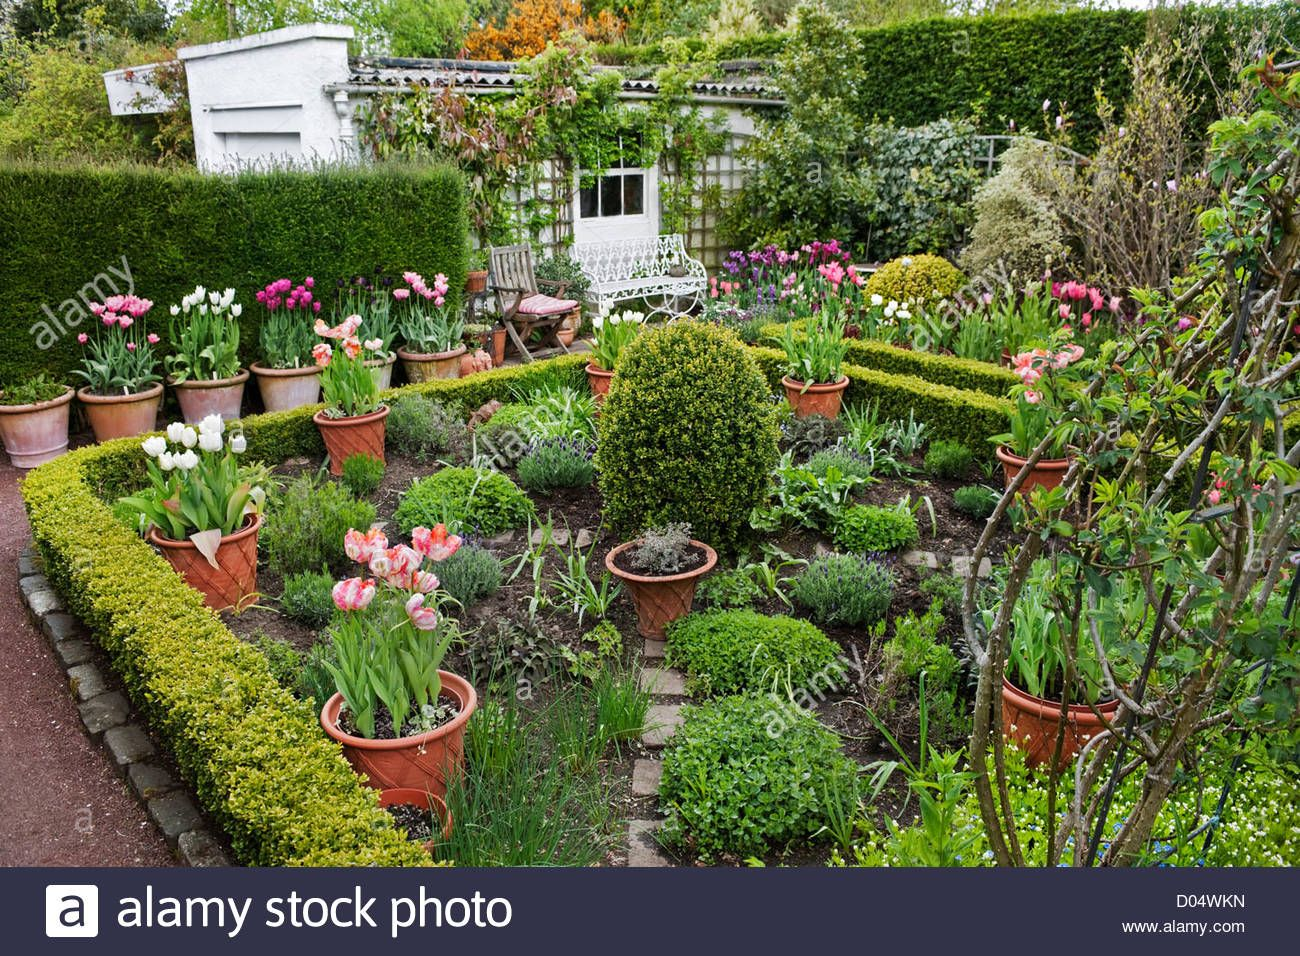 Potager Garden With Herbs And Tulips In Containers Roscullen Edinburgh Scotland Stock Photo Potager Garden Garden Design Plans Garden Design